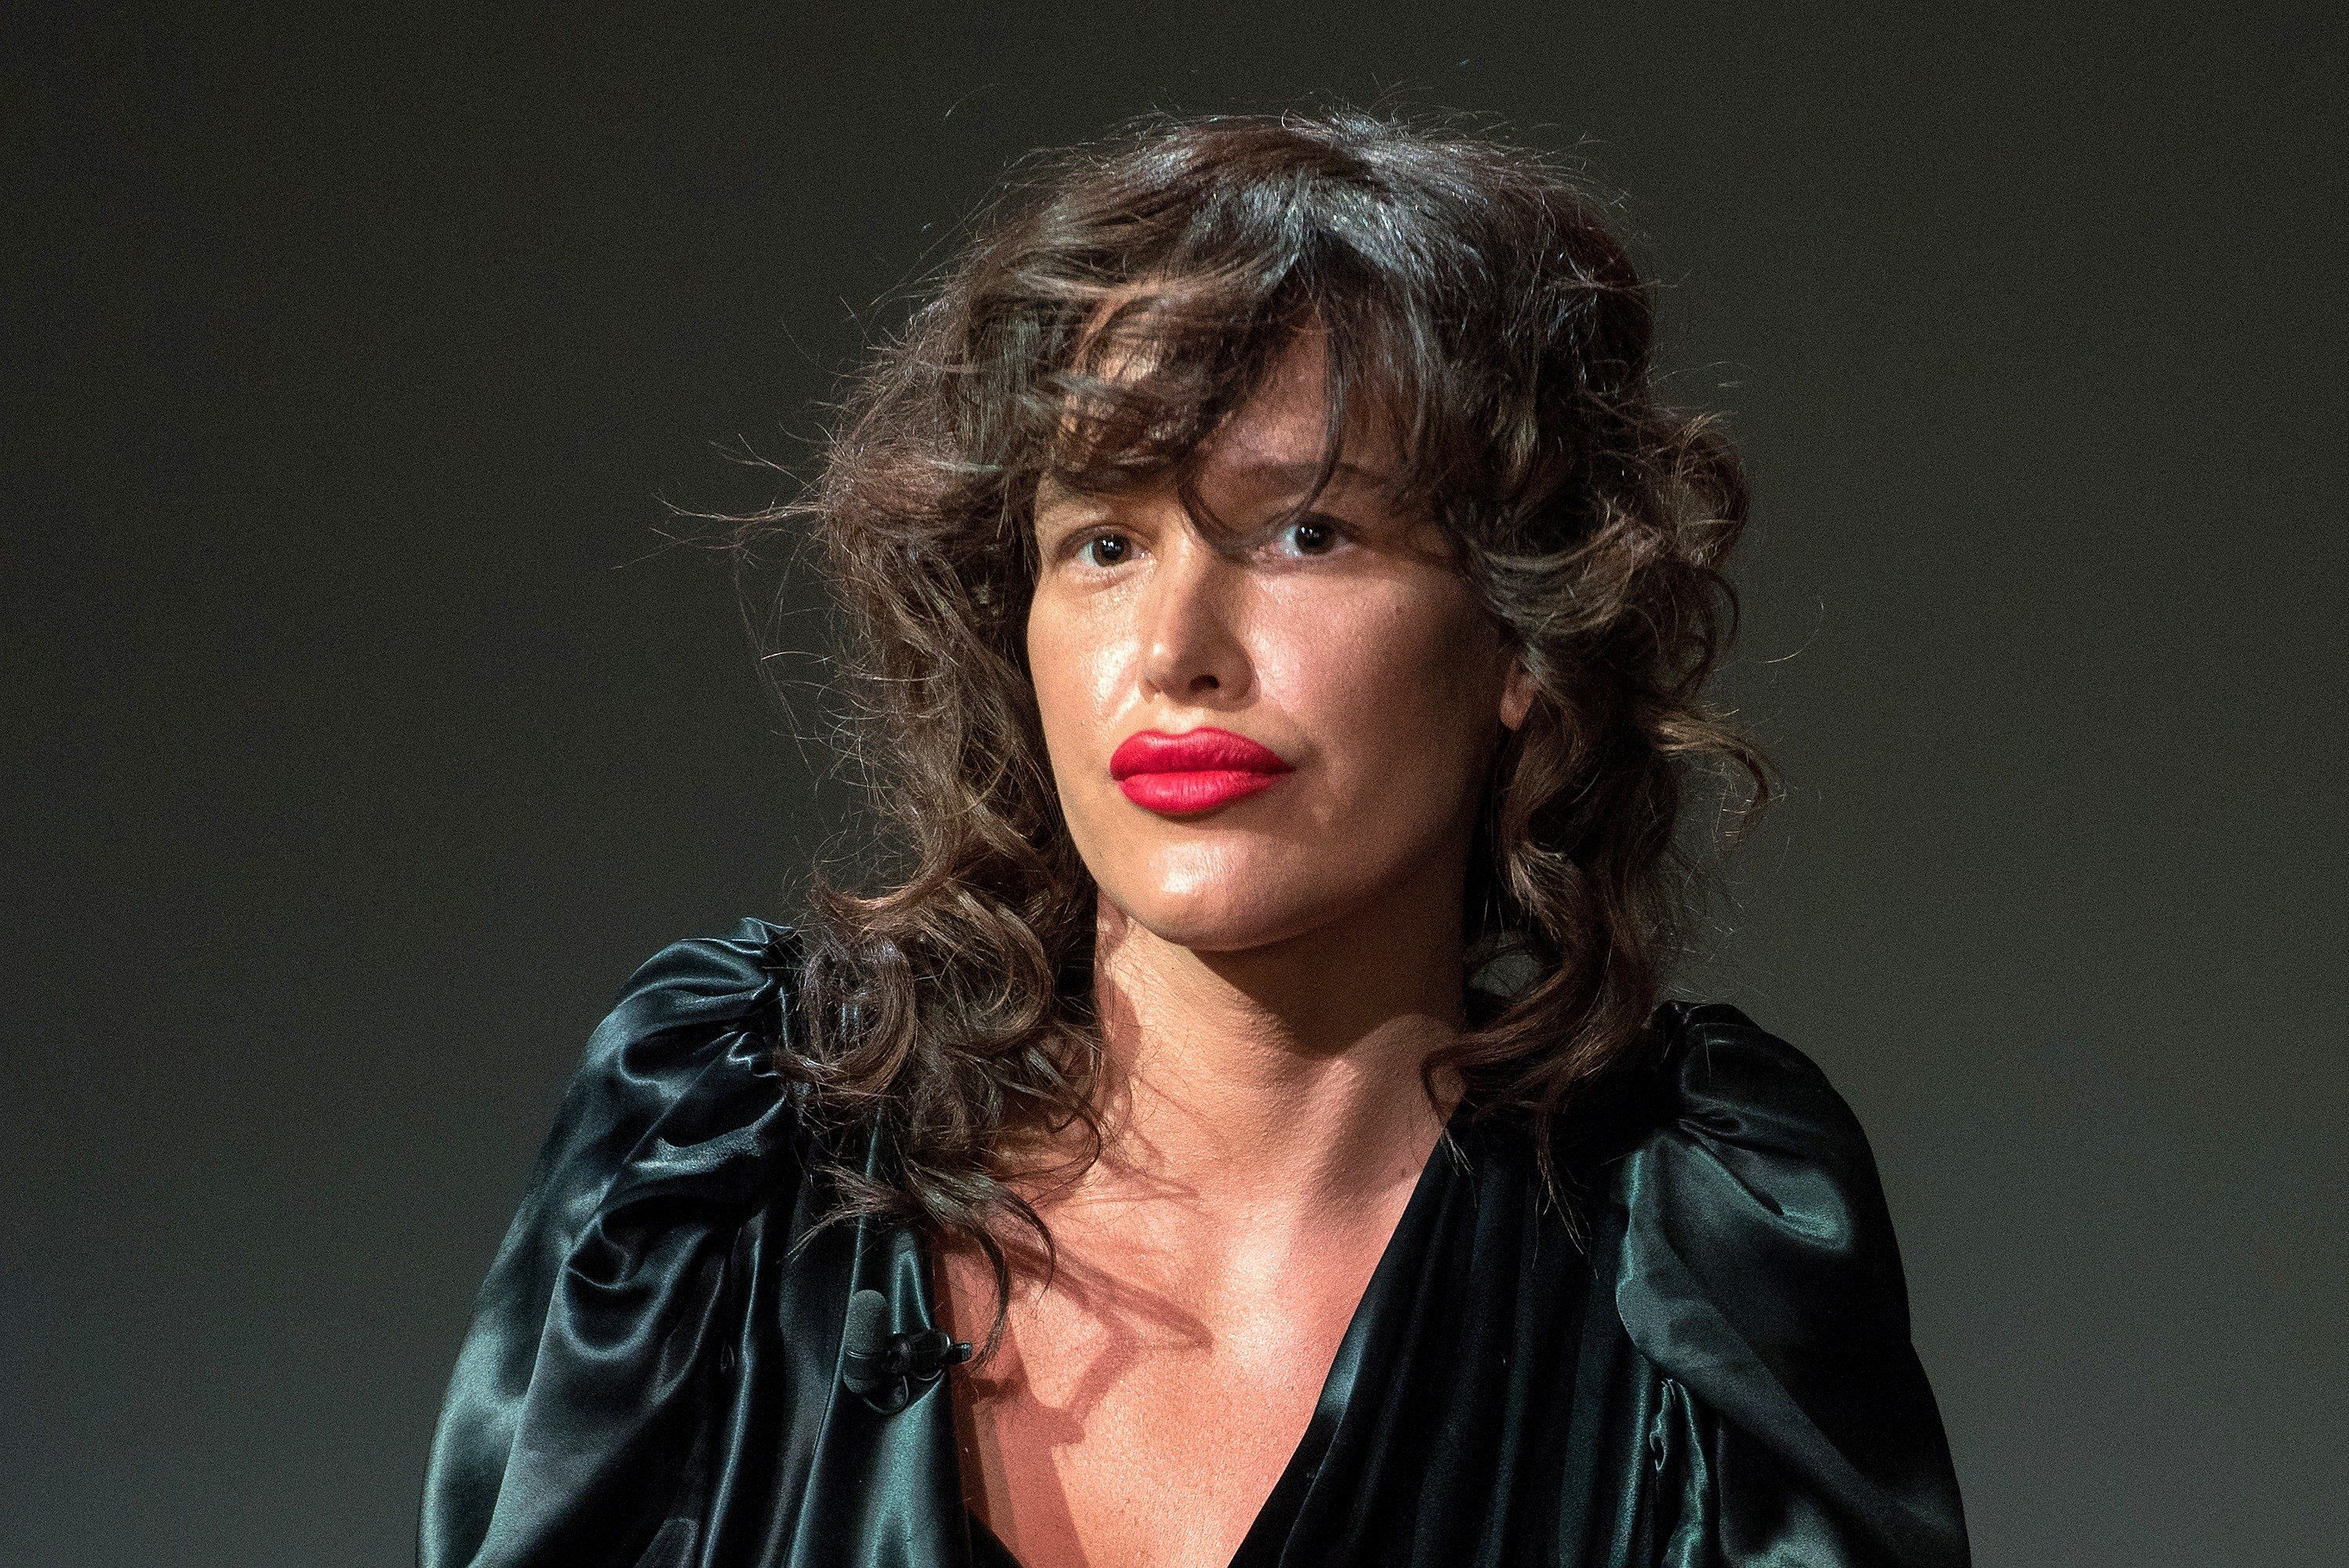 NEW YORK, NY - APRIL 20:  Actress Paz de la Huerta attends Apple Store Soho Presents Tribeca Film Festival: Natalia Leite, Alexandra Roxo, Dianna Agron, and Paz de la Huerta, 'Bare' at Apple Store Soho on April 20, 2015 in New York City.  (Photo by Mike Pont/WireImage)